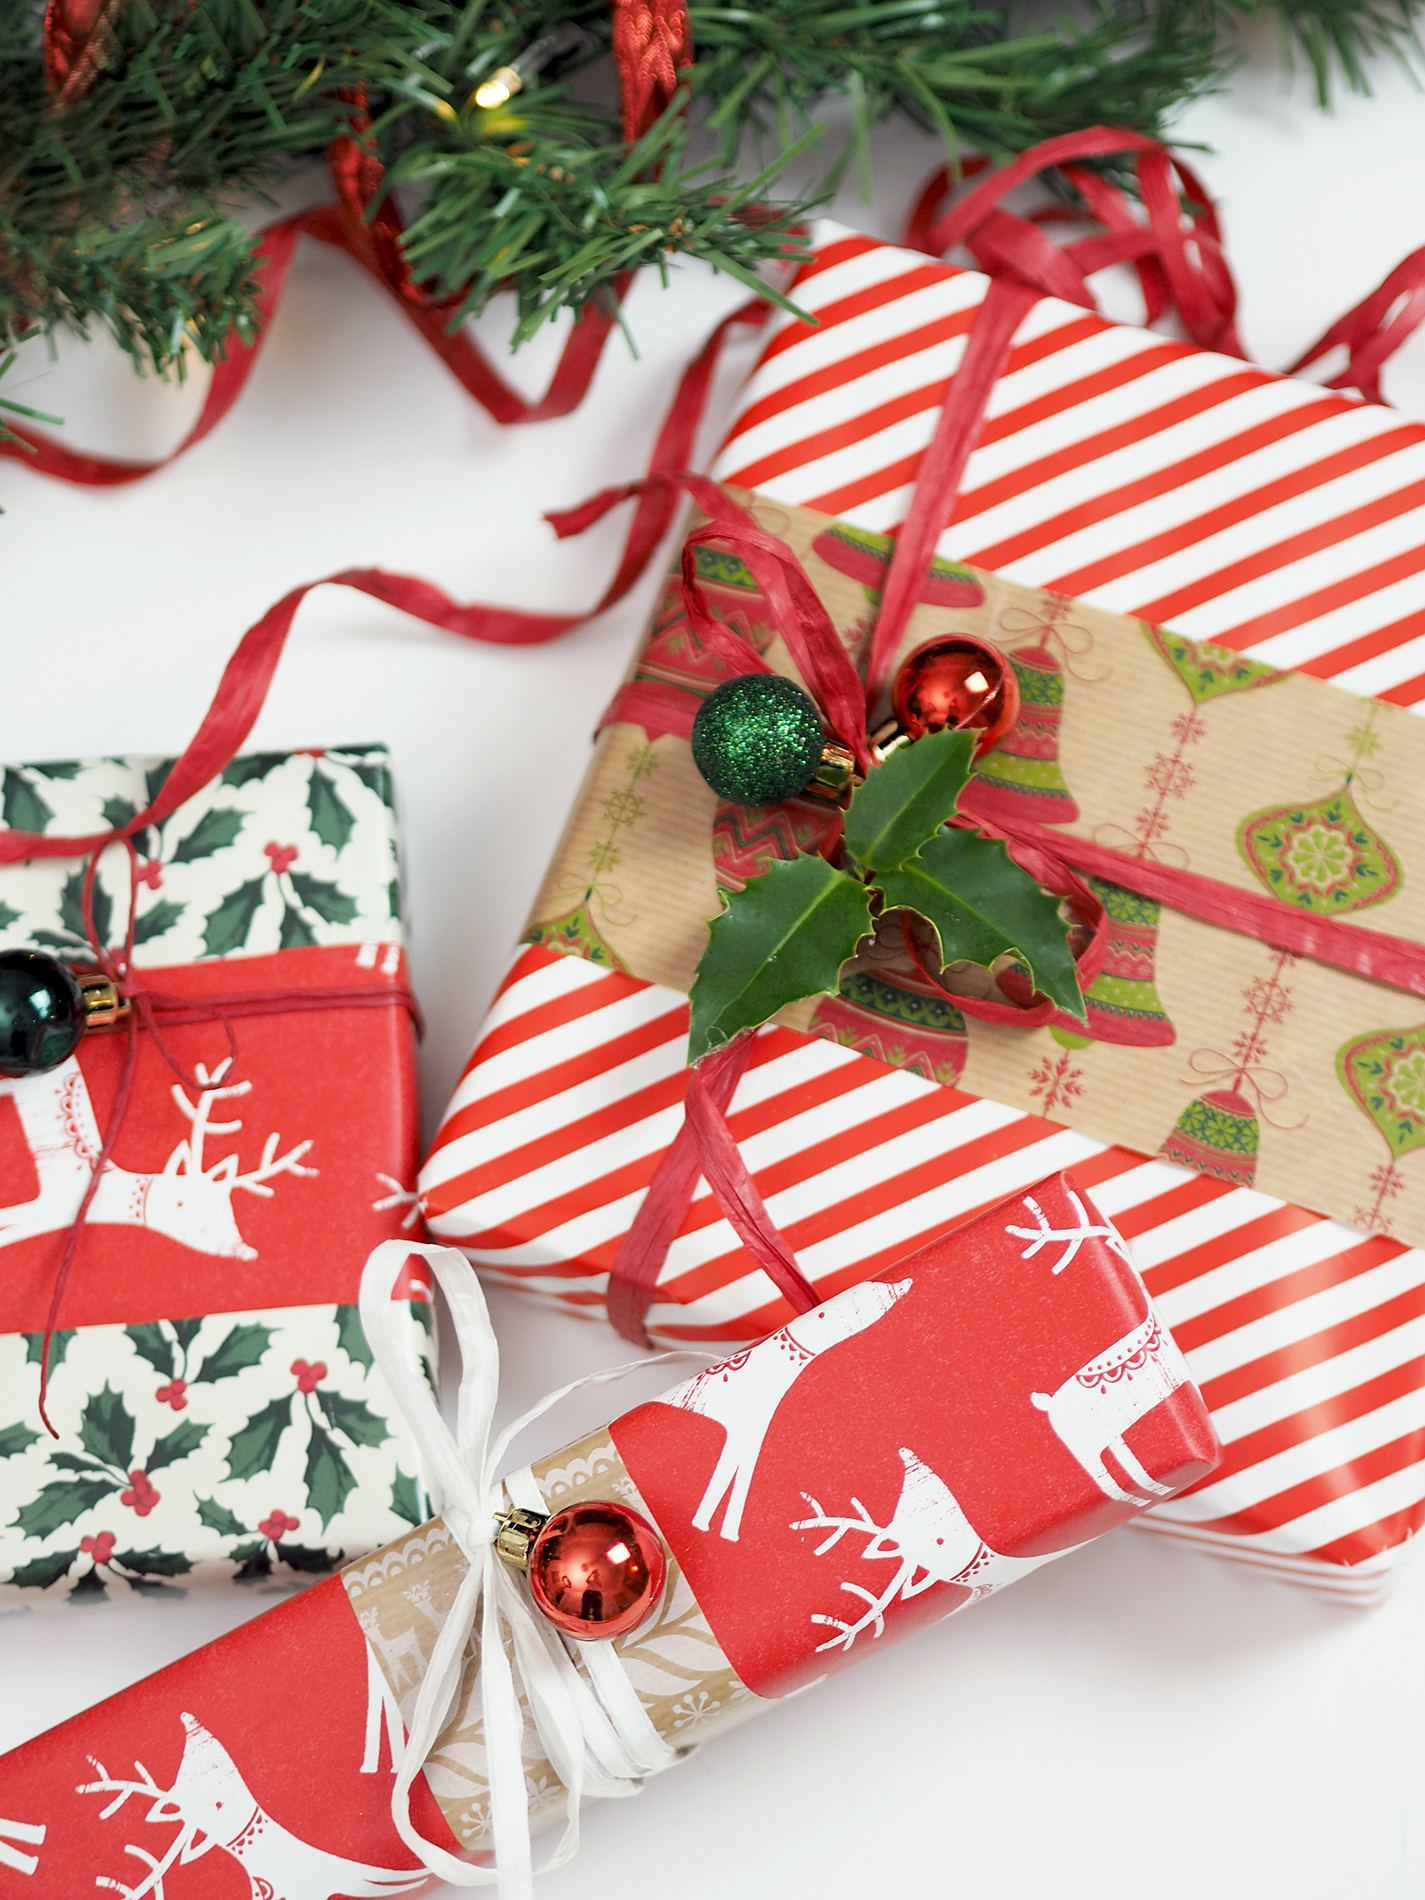 UNIQUE WAYS TO WRAP YOUR GIFTS